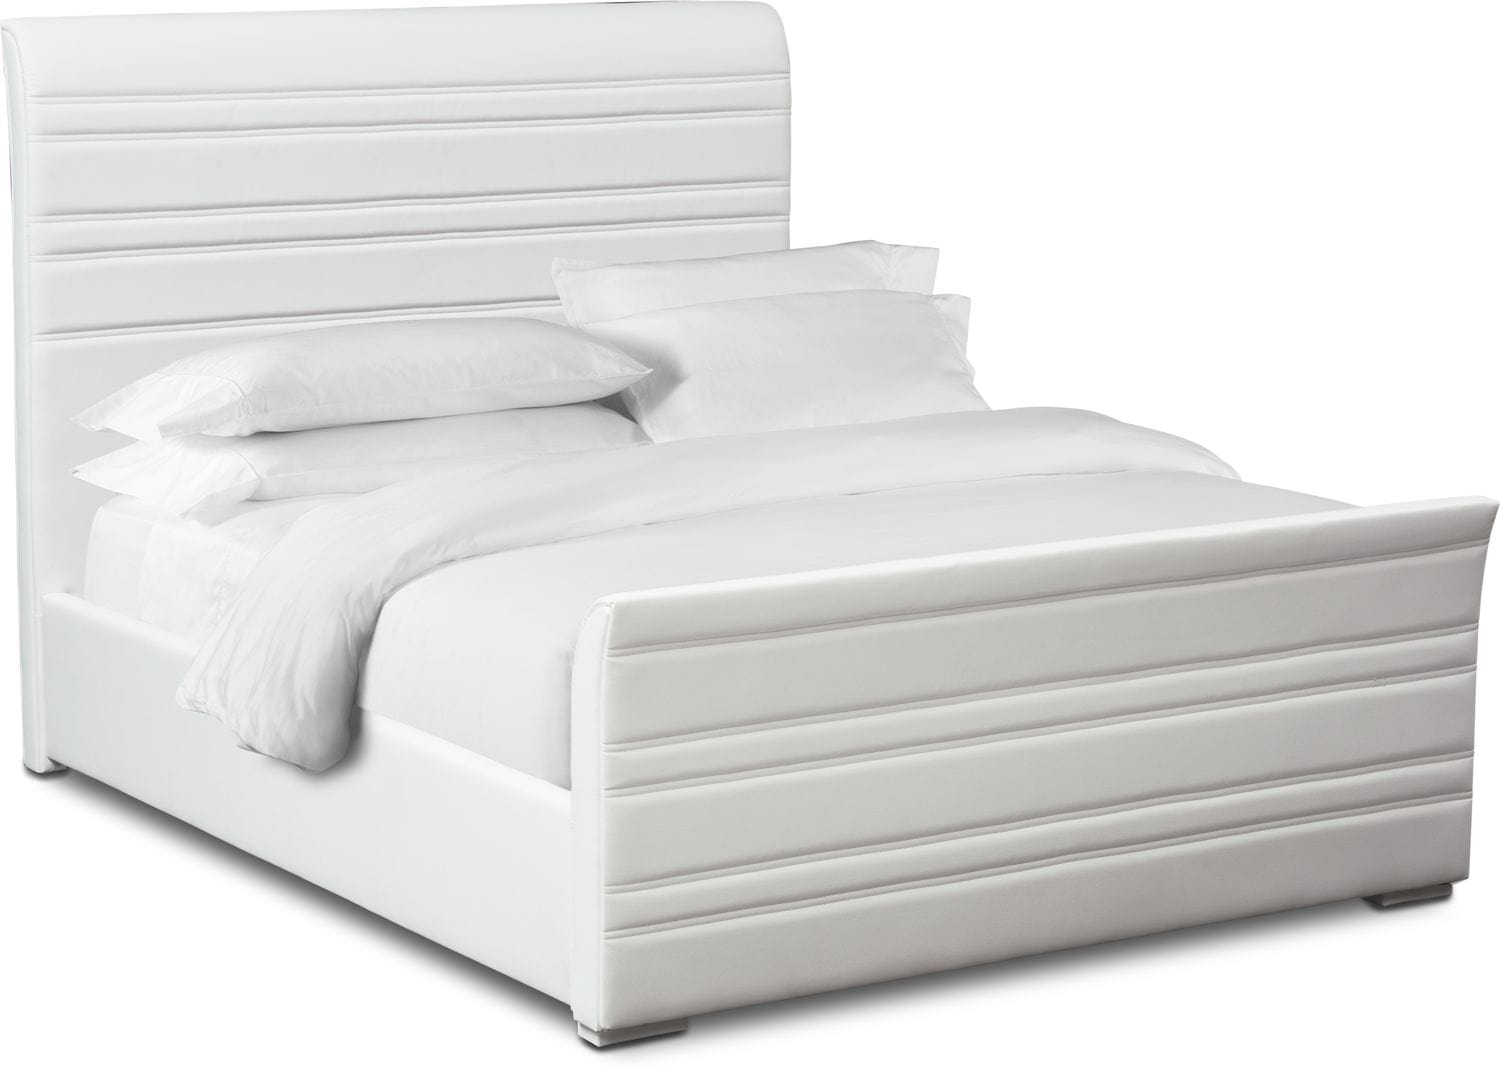 Bedroom Furniture - Allori King Upholstered Bed - White